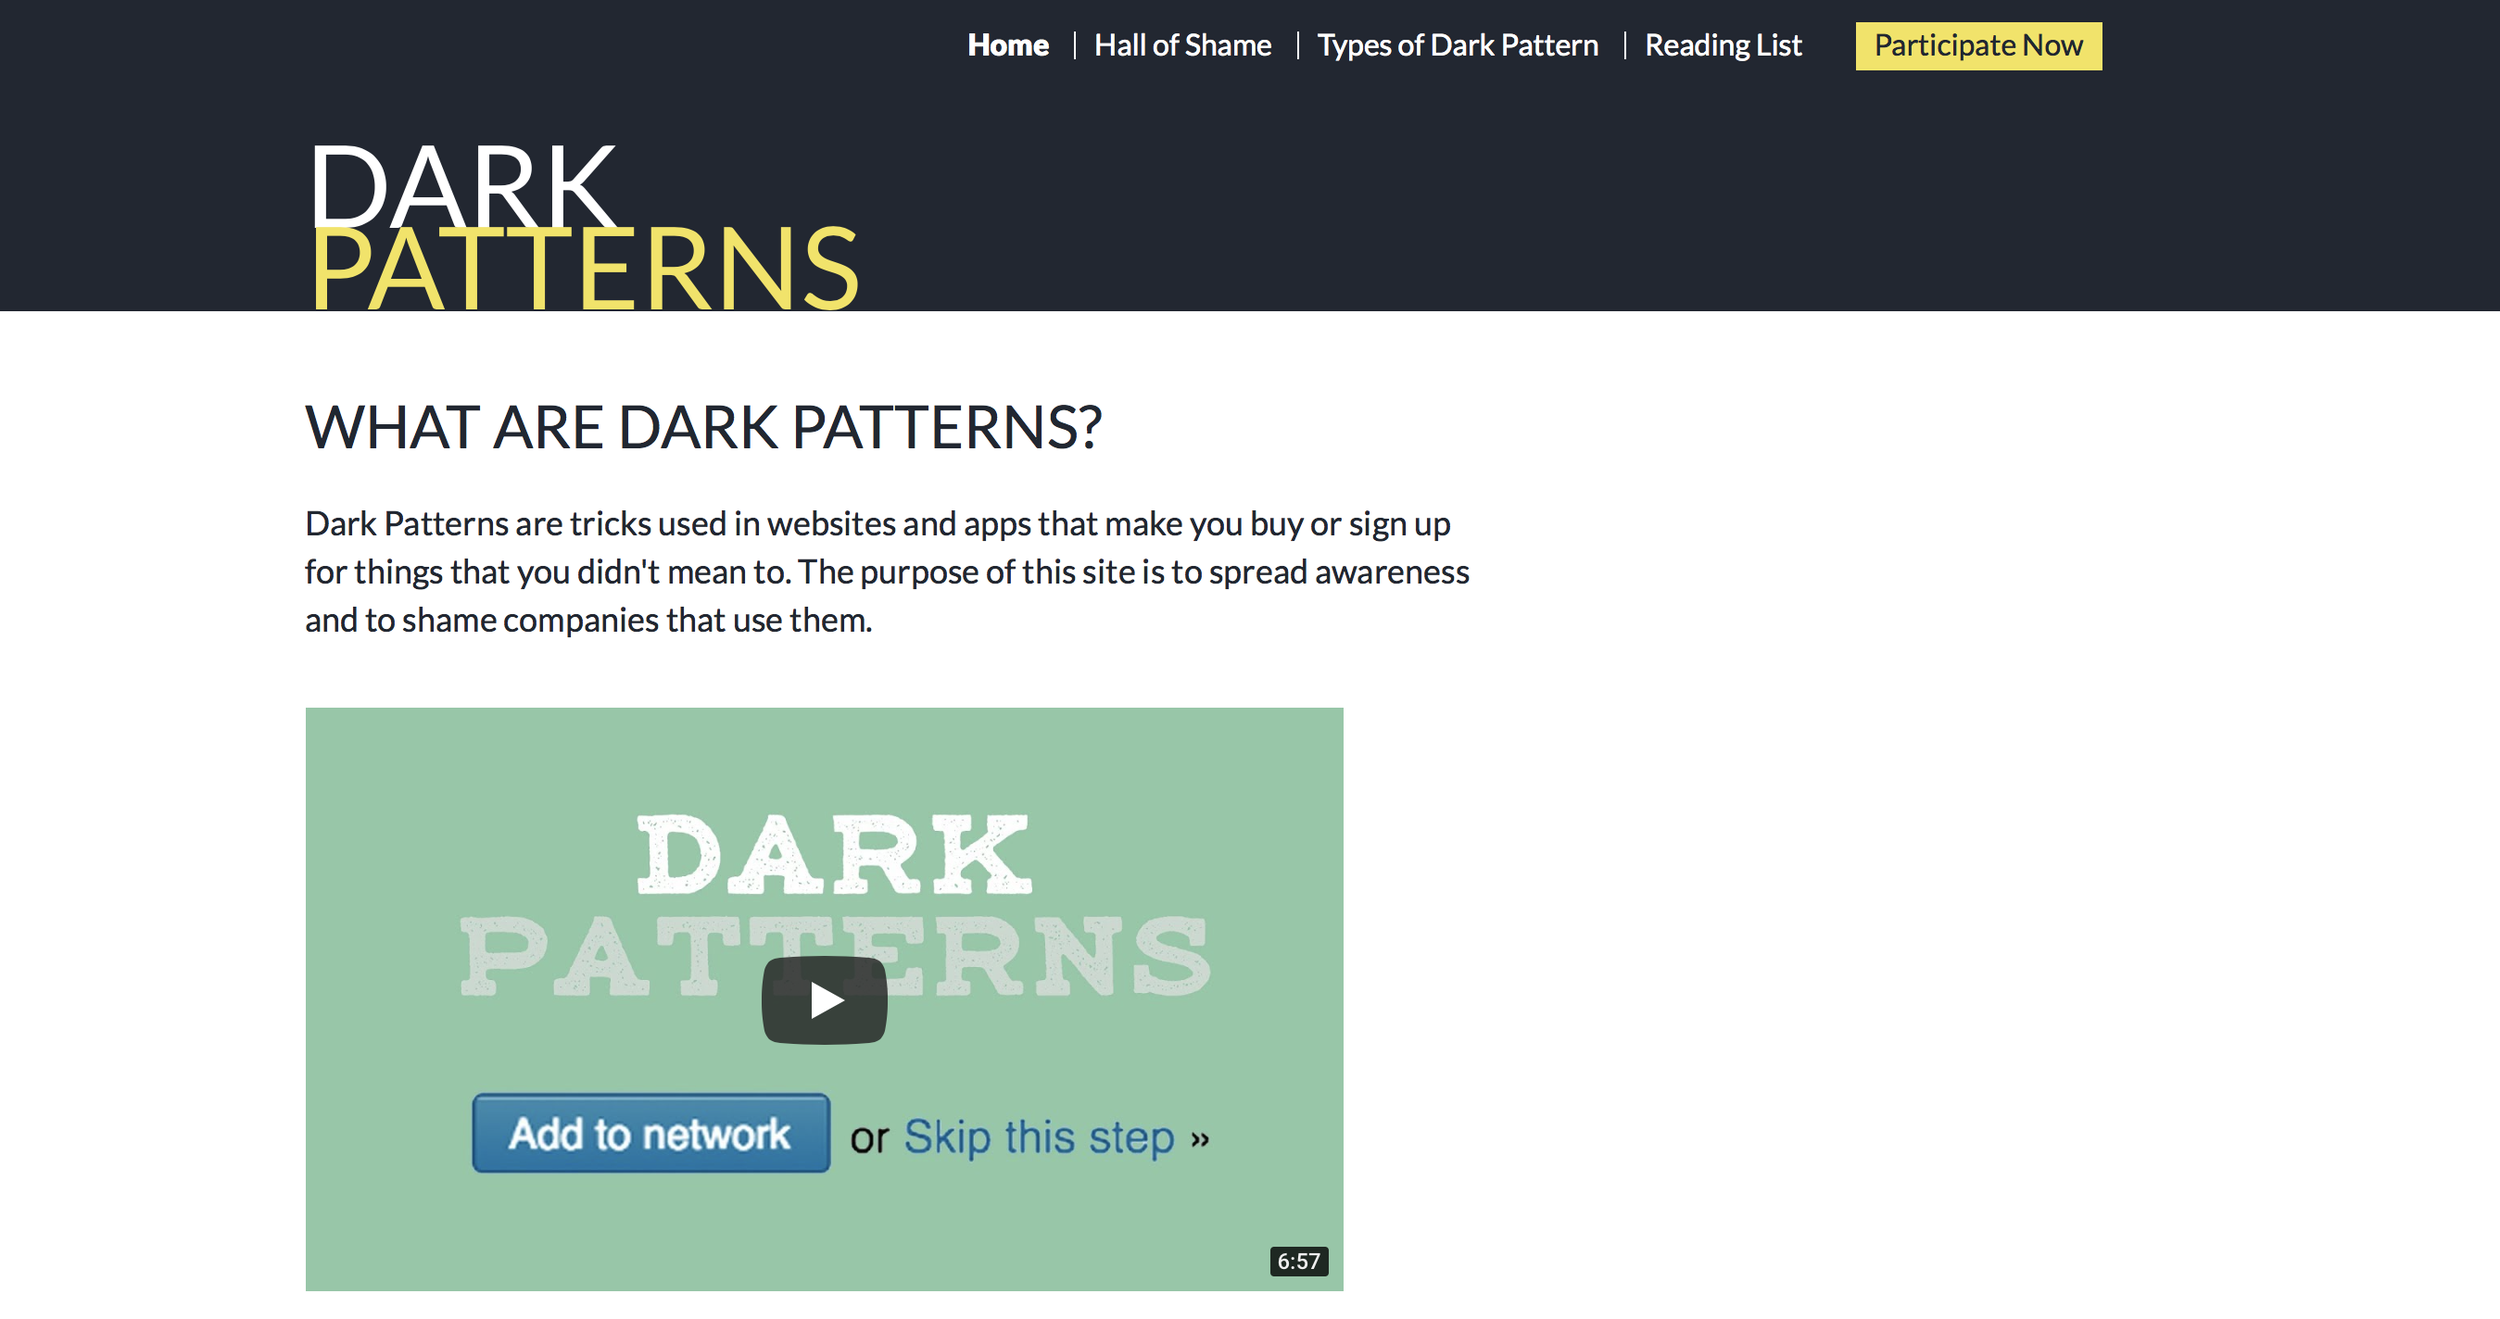 DarkPatterns.org - Hall of shame and a spotters guide.